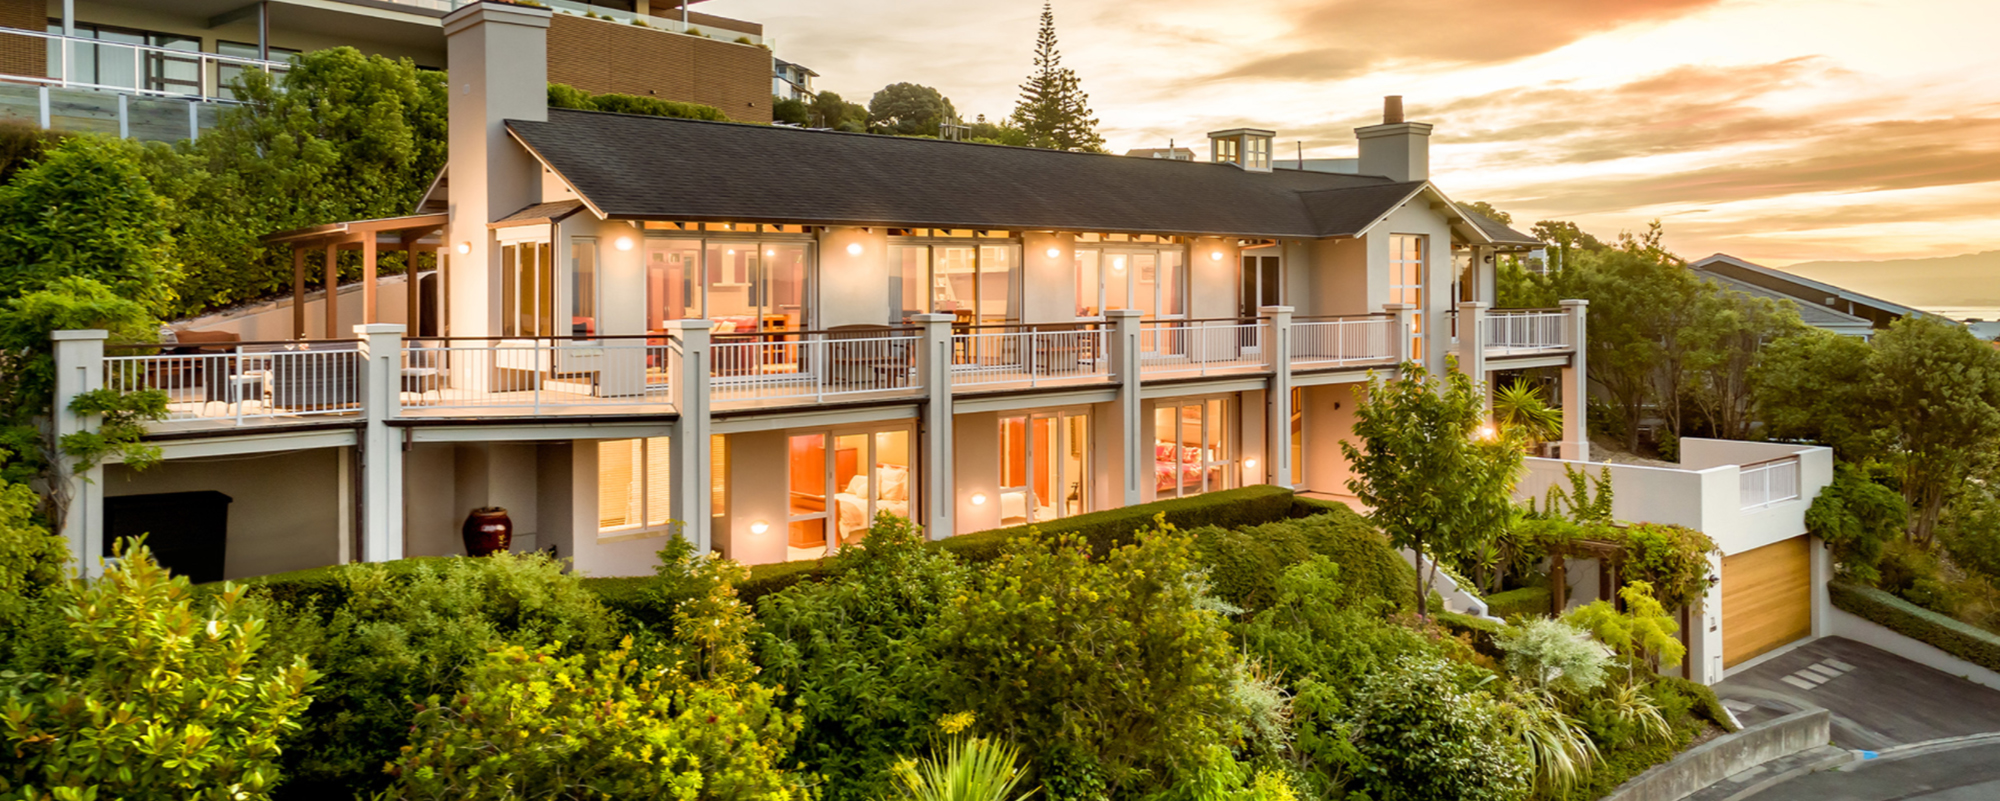 Nelson New Zealand Houses for sale